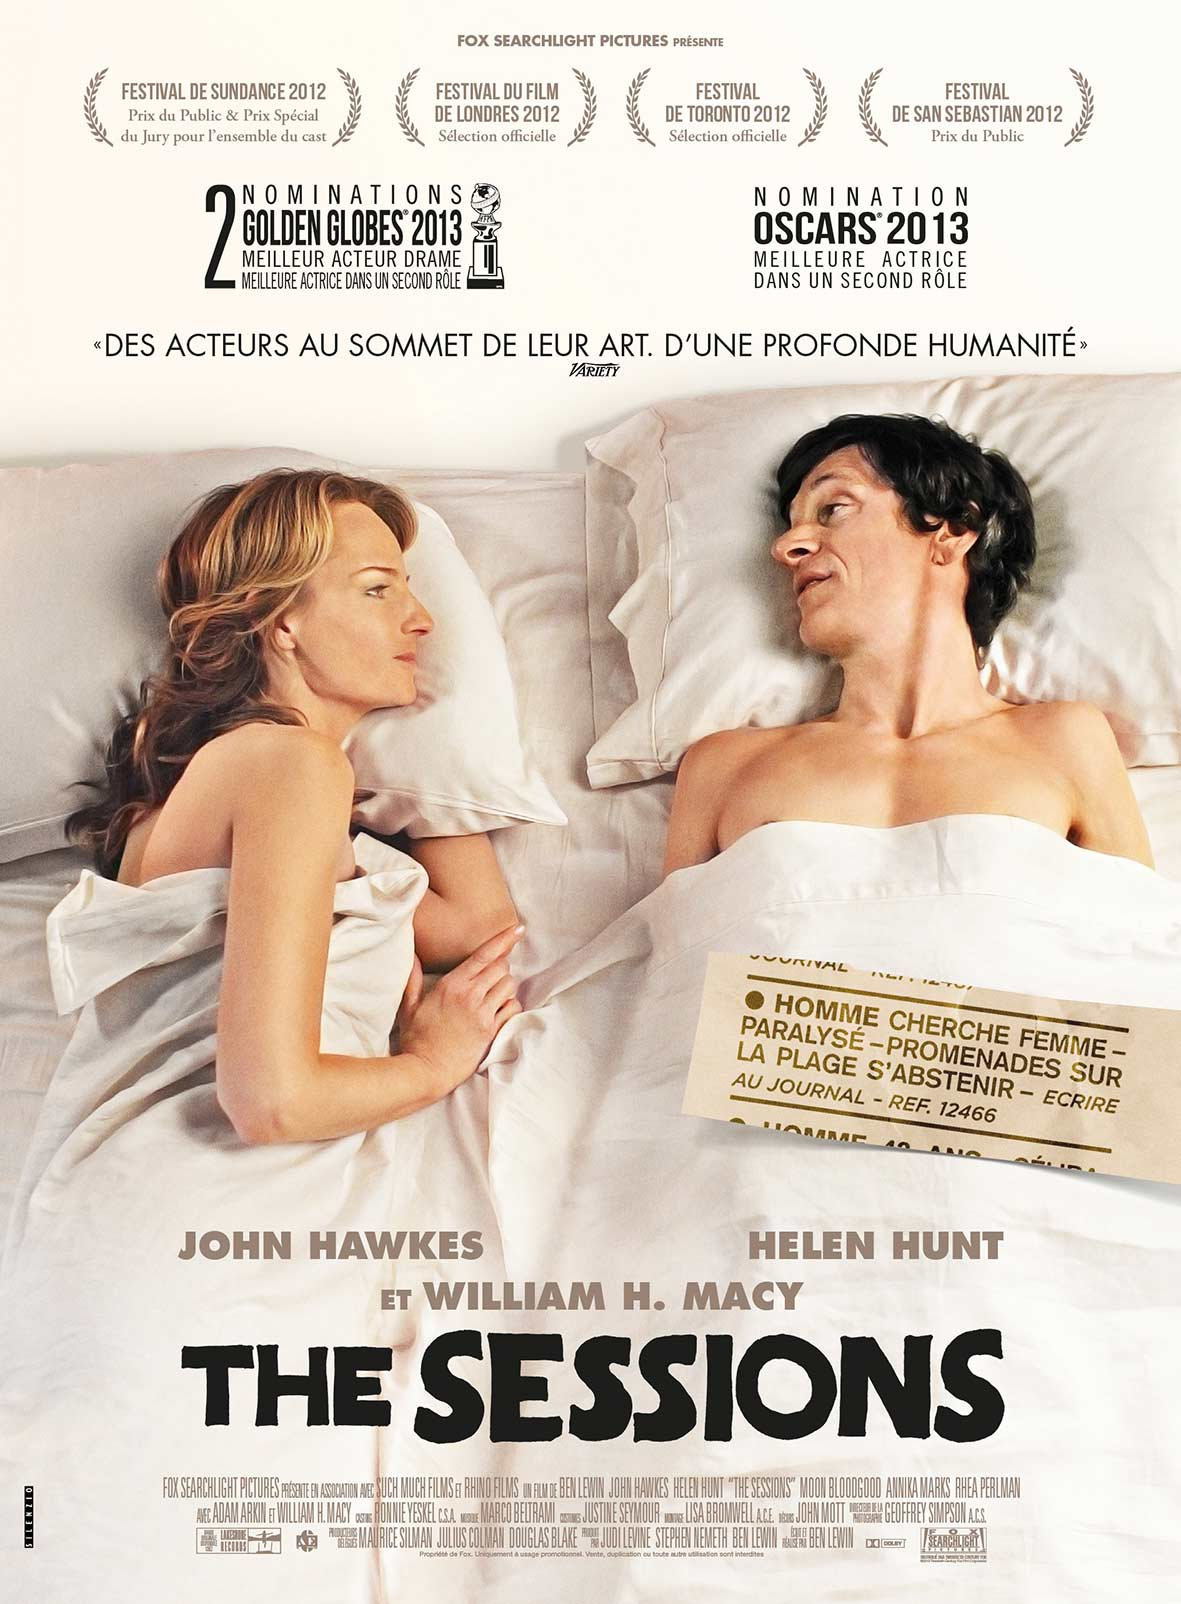 Affiche du film The Sessions.